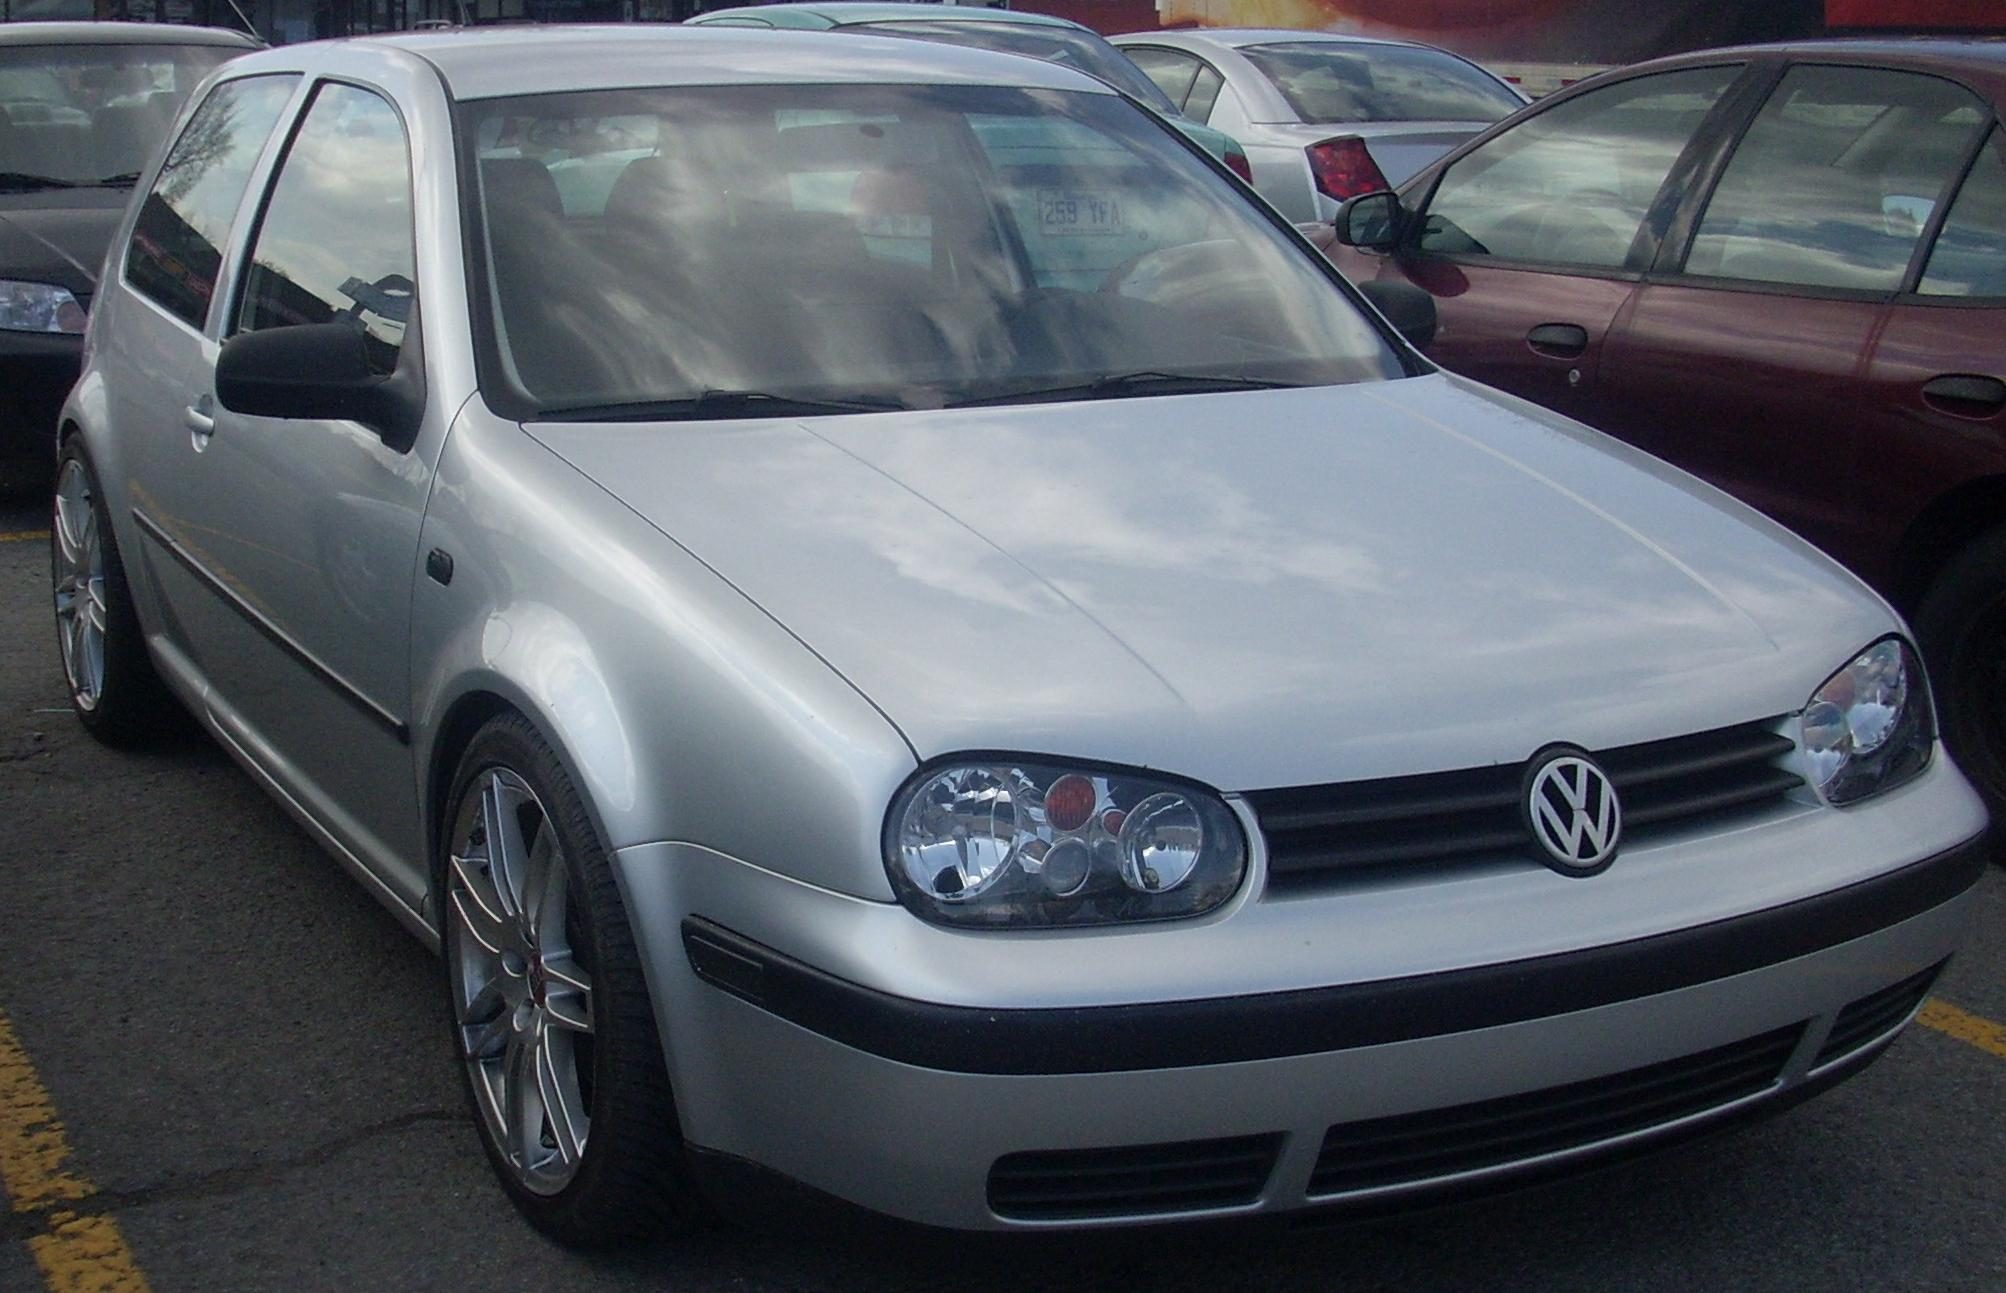 Golf Mark 4 File:volkswagen Golf Mark 4